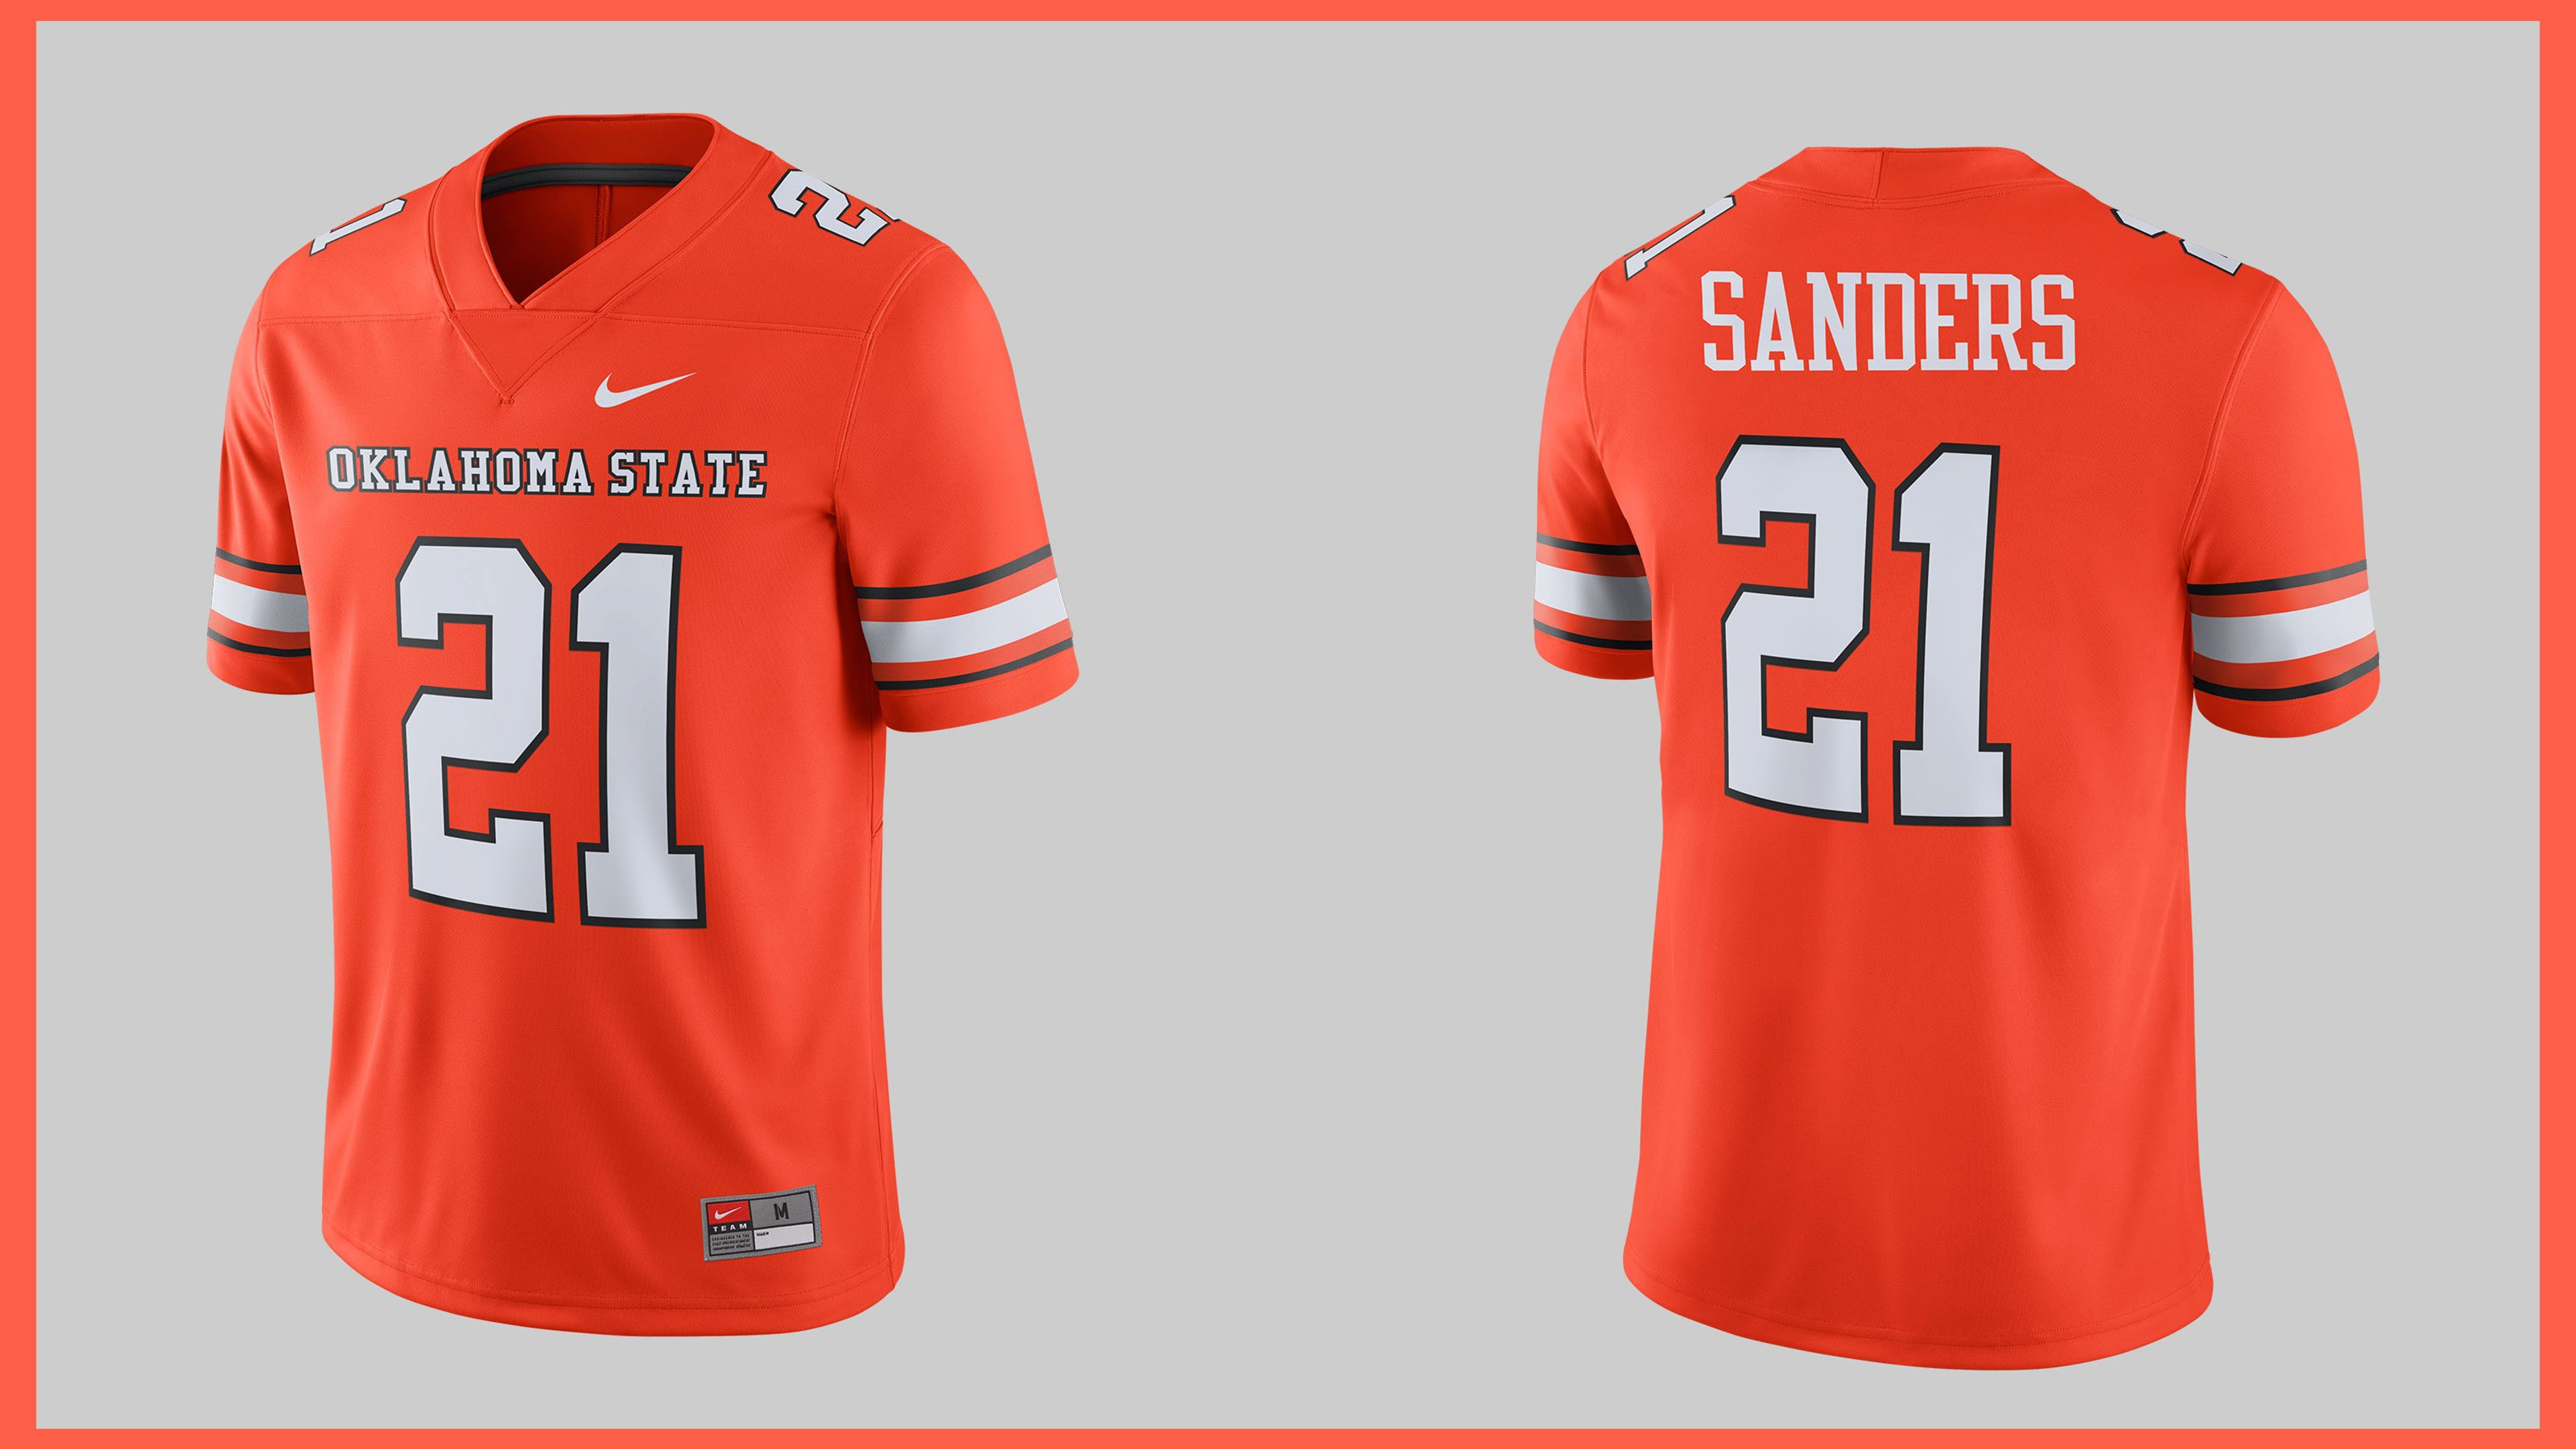 finest selection 2fd9d 3281c A real treat': Barry Sanders on Oklahoma State's uniforms ...